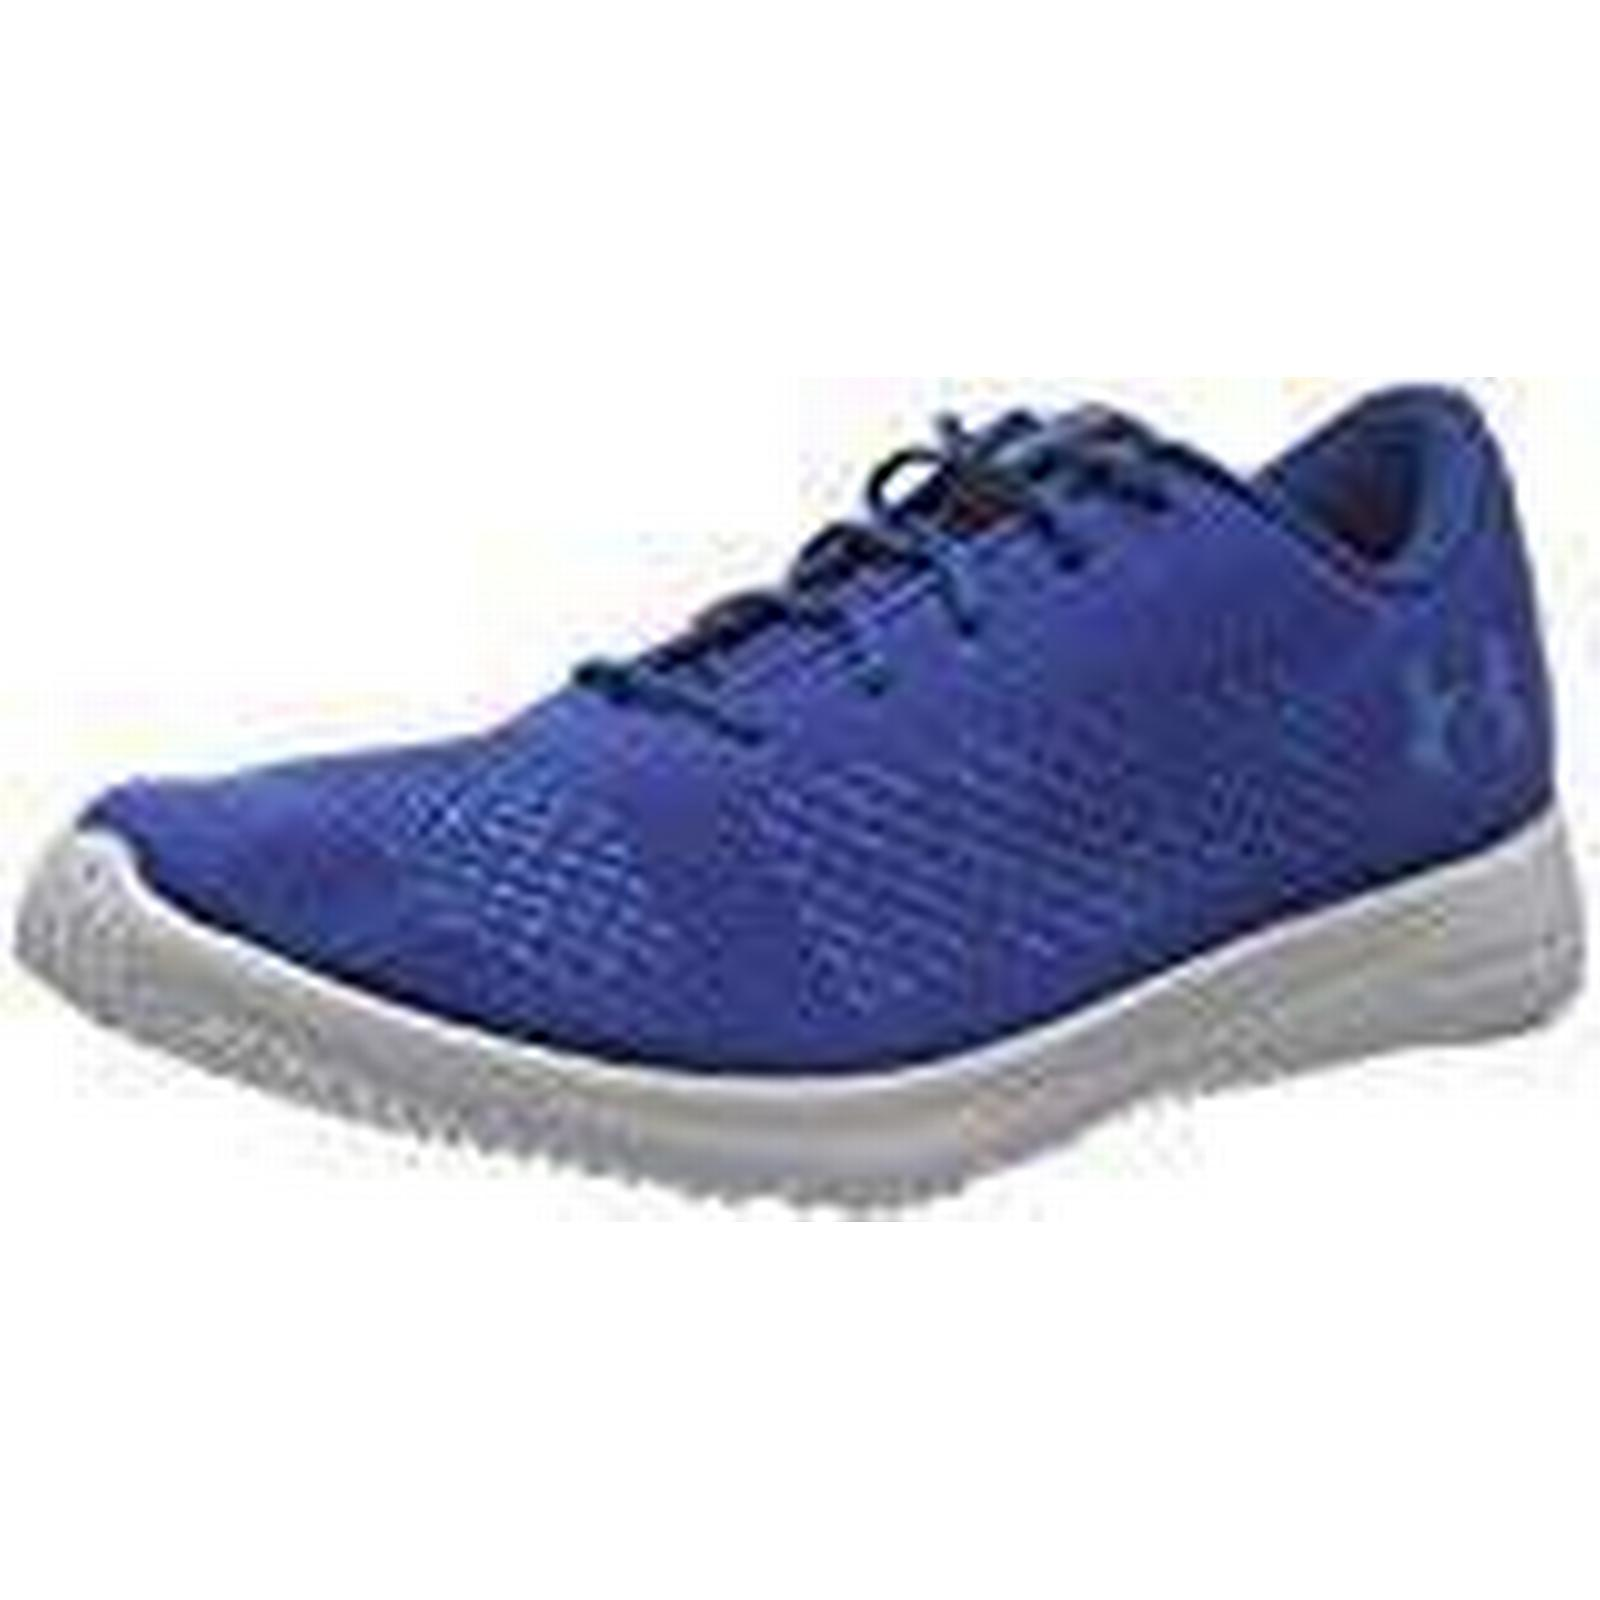 Under Armour Men''s Ua Rapid Competition 11 Running Shoes, (Moroccan Blue), 11 Competition UK c6d78b